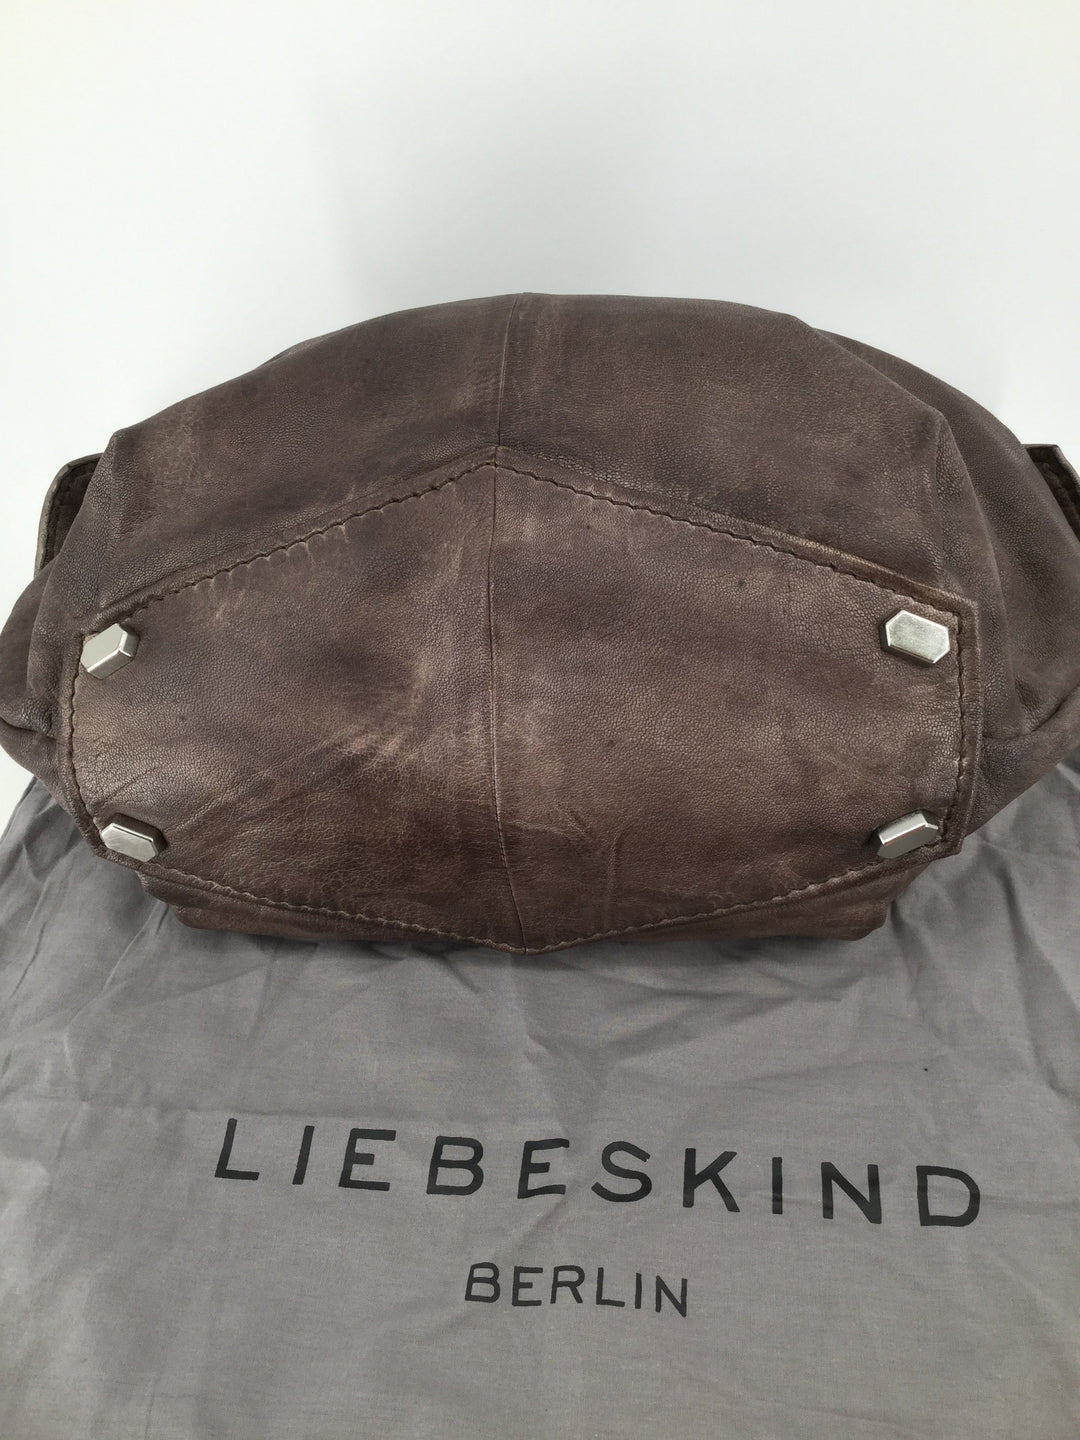 Liebeskind Handbag, Bronze, Size Medium - <P>THIS GENTLY WORN LIEBESKIND HANDBAG IS BEAUTIFUL INSIDE AND OUT. MEASURES 10 INCHES TALL AND 19 INCHES WIDE. COMES WITH SLEEPER BAG. MAKE HER YOURS FOR ONLY $80.</P>